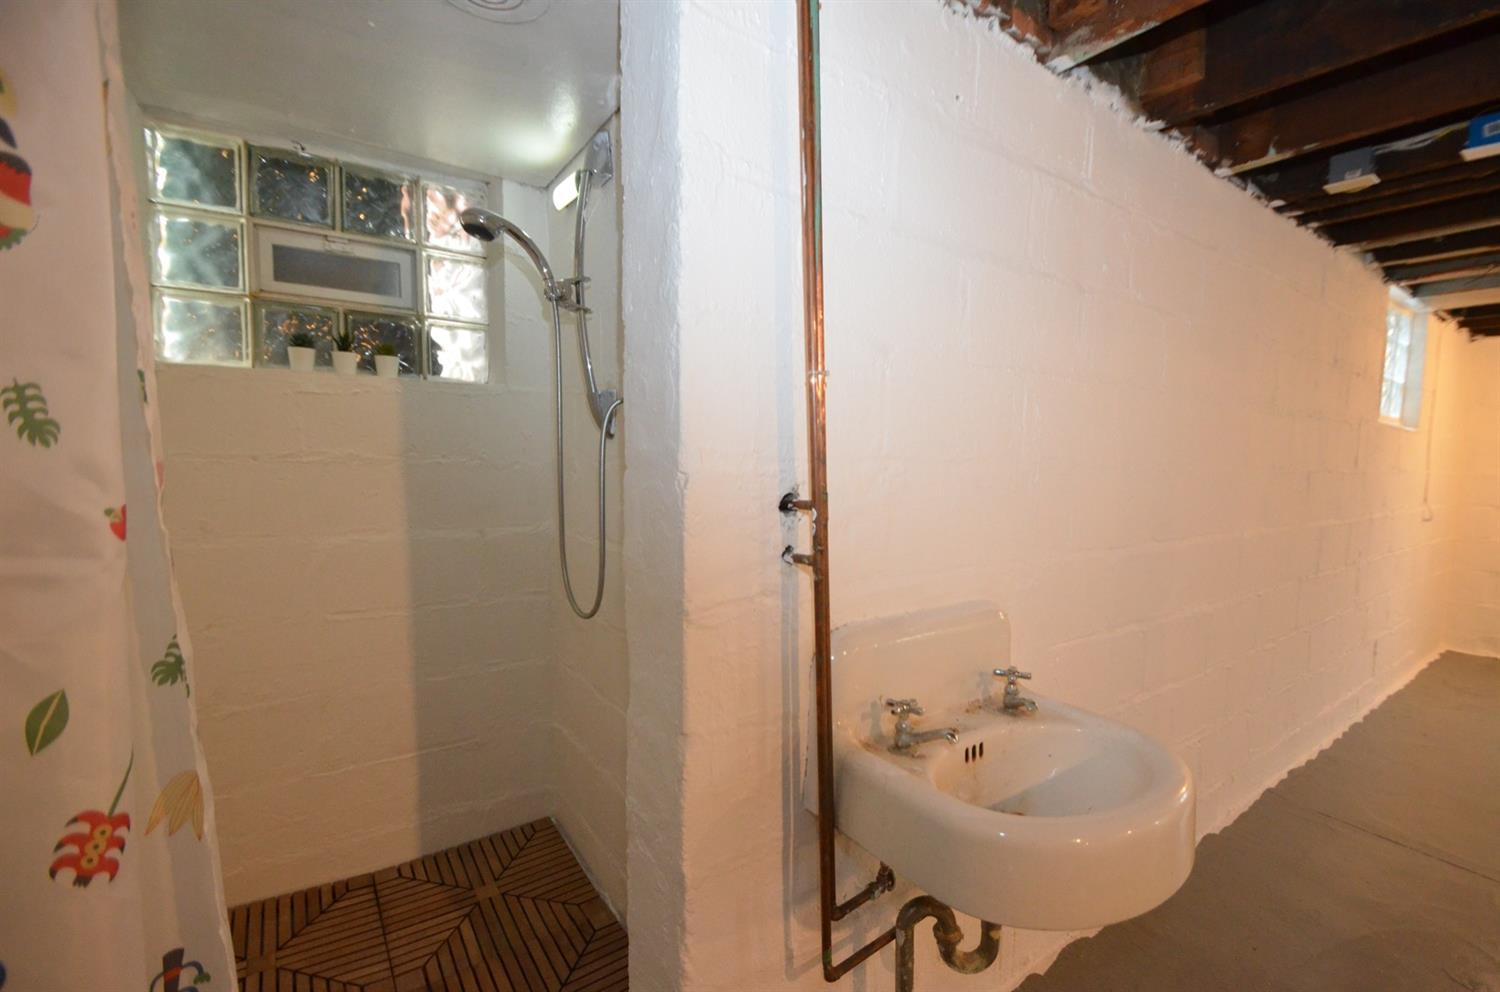 Cute full bath in the basement features this old timey sink and shower.